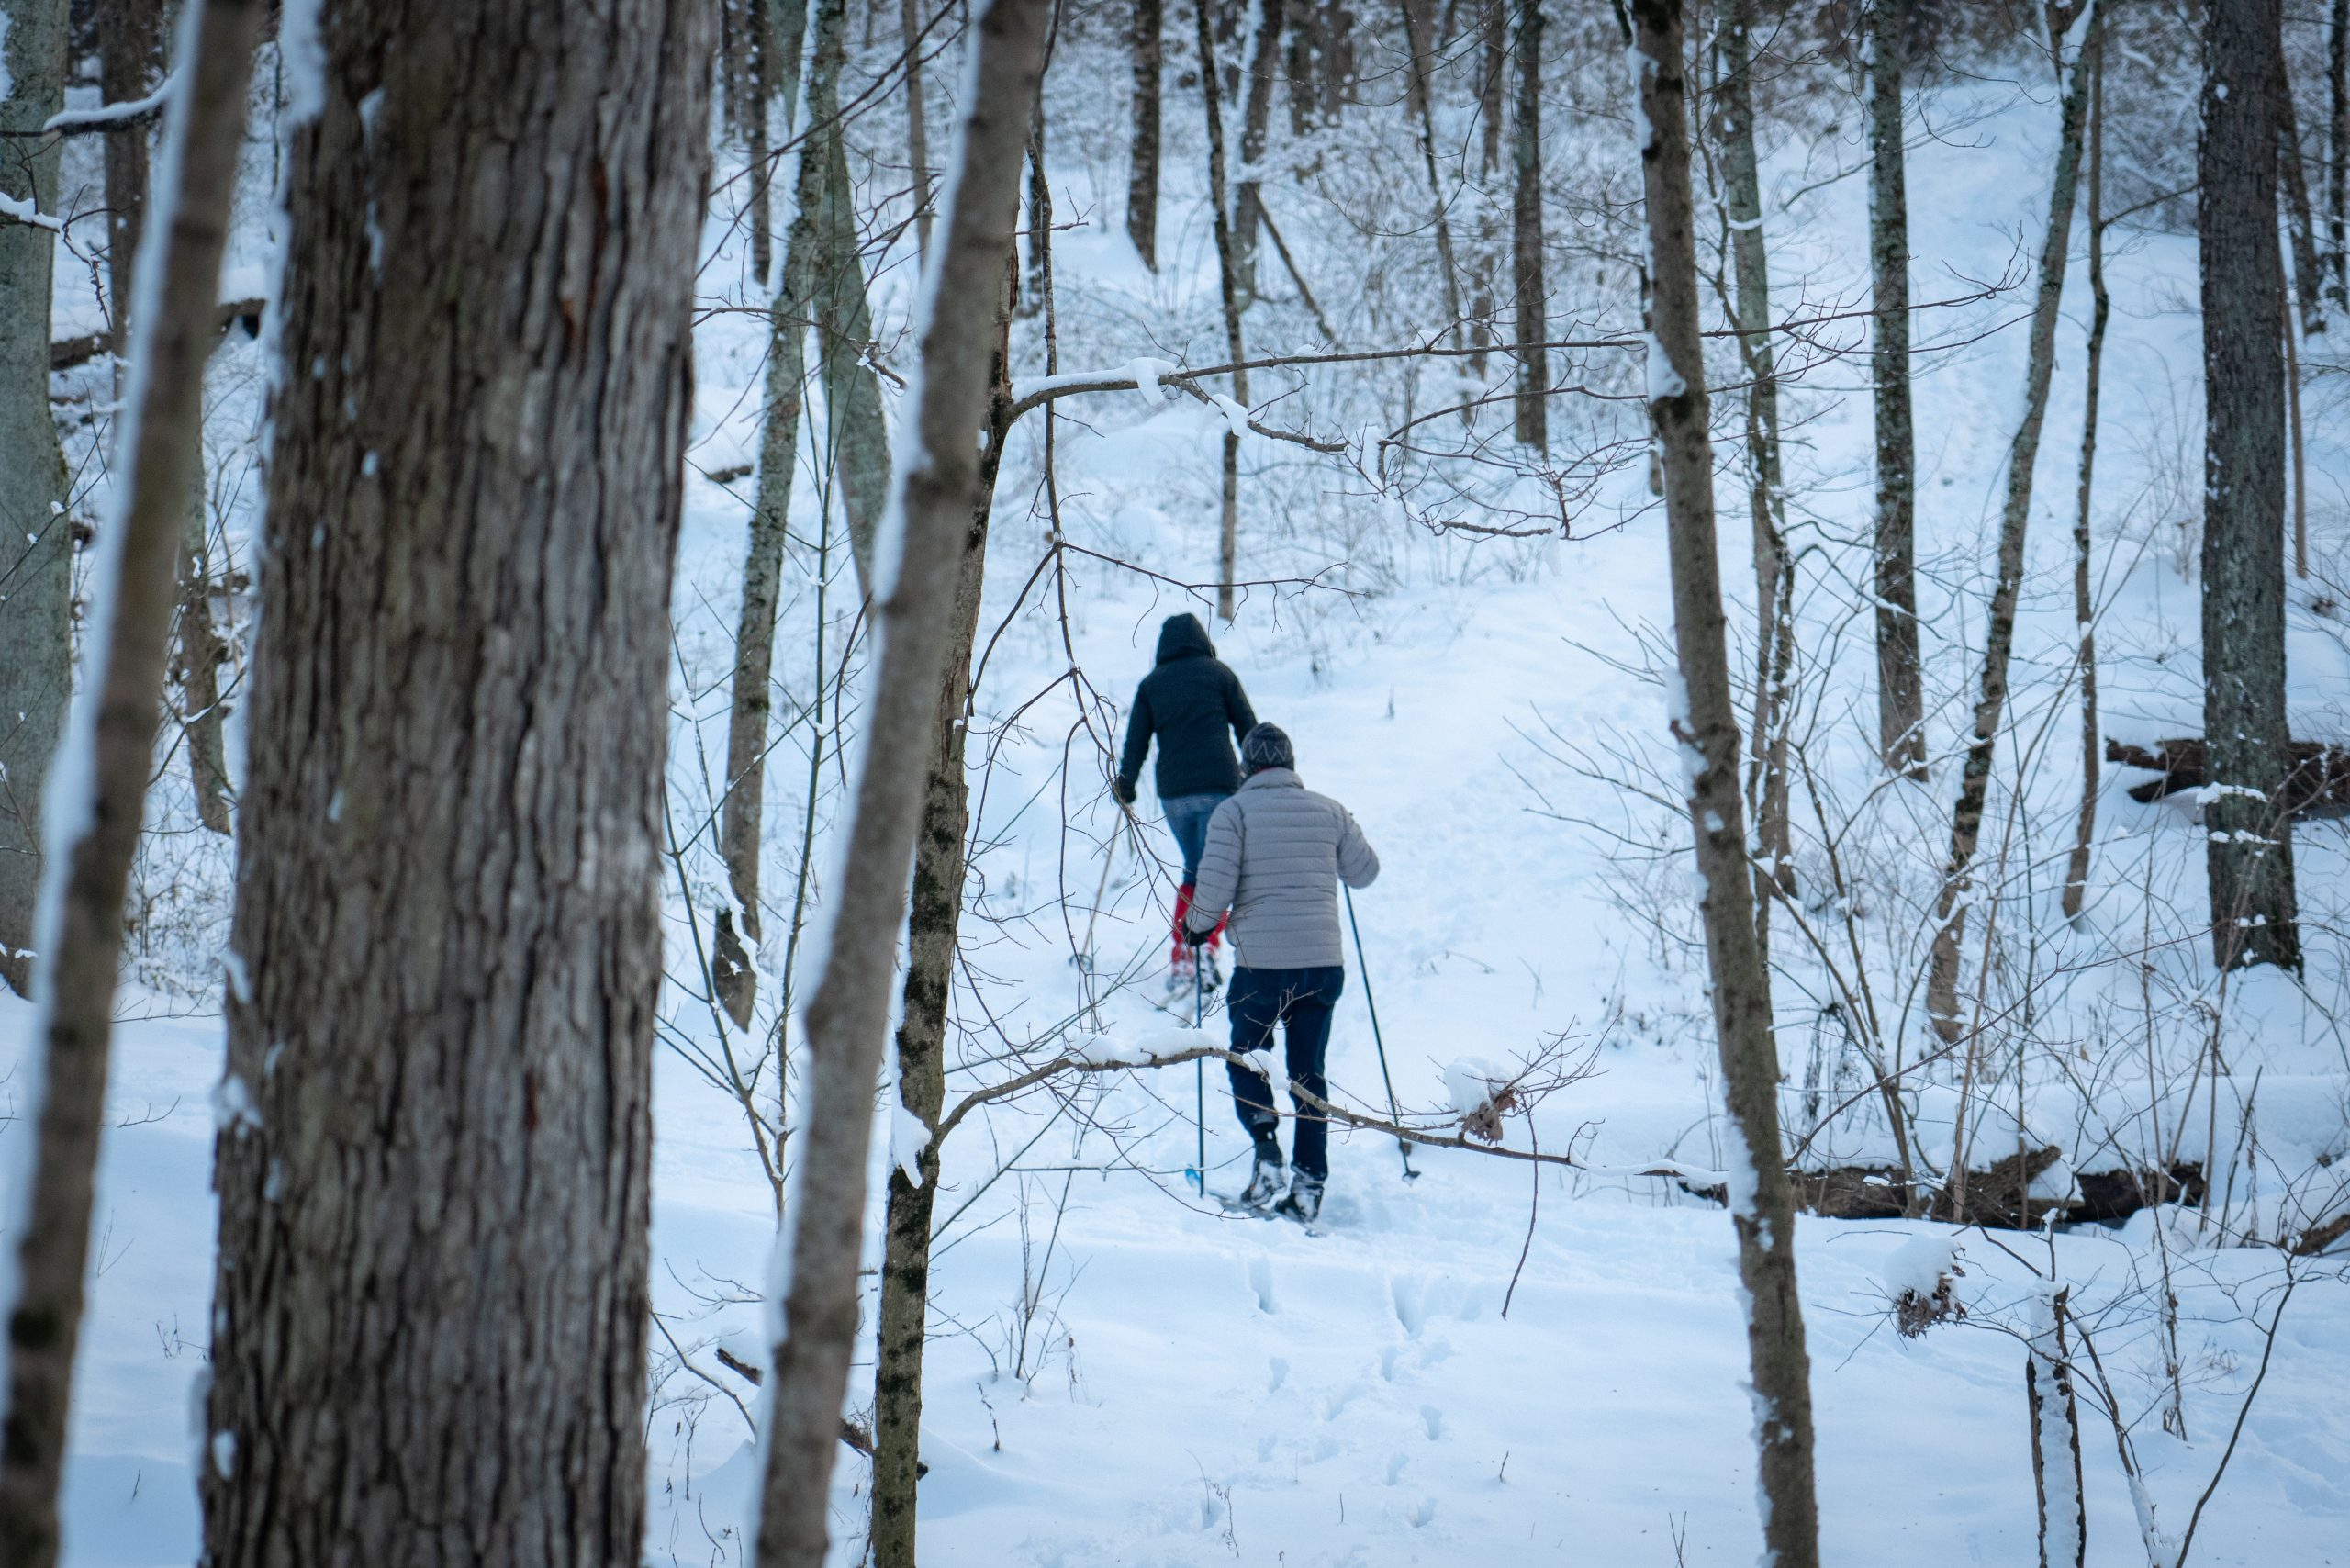 A man and woman go cross-country skiing in the snow, heading away from the camera.